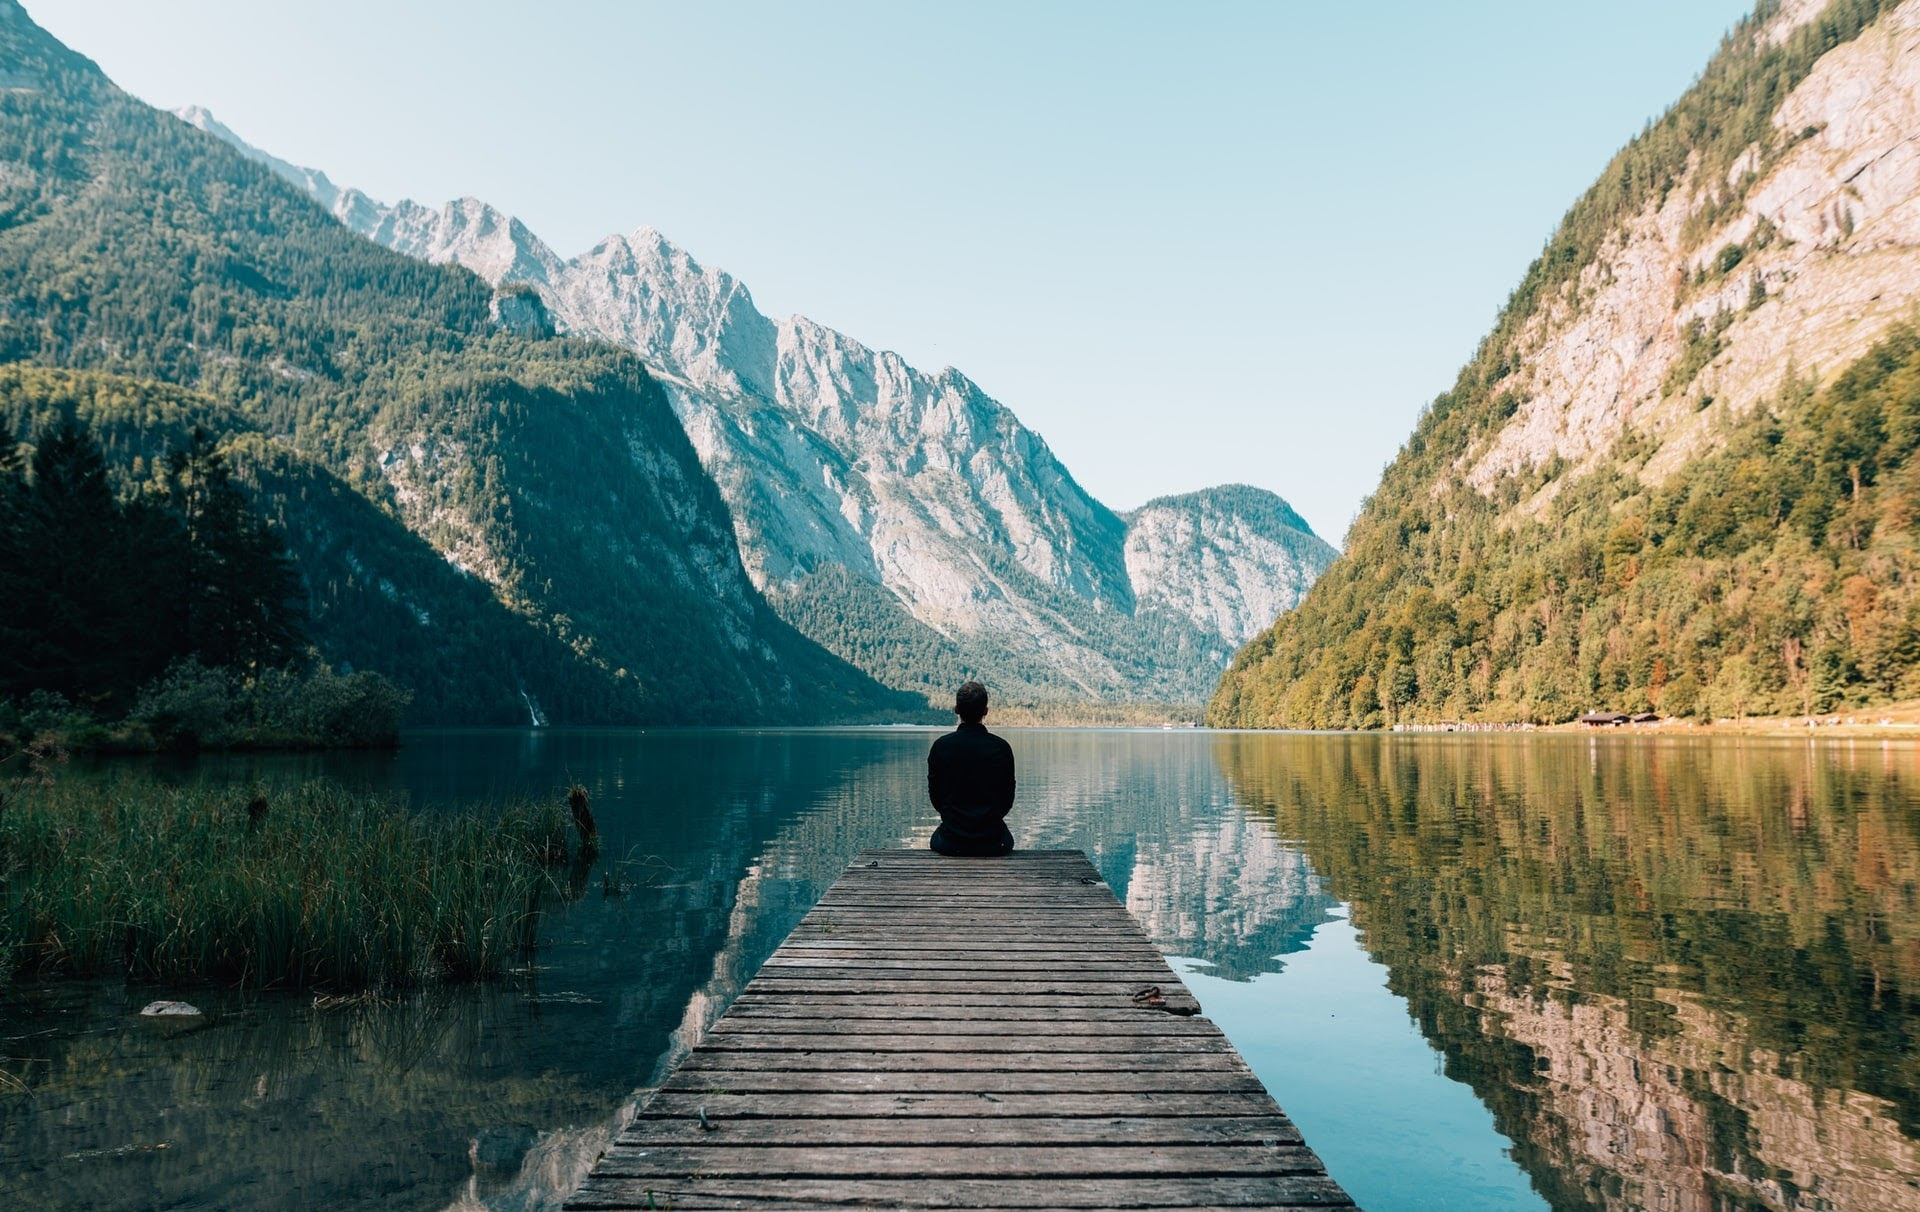 a person sitting on a pier on the water and looking out at the mountains